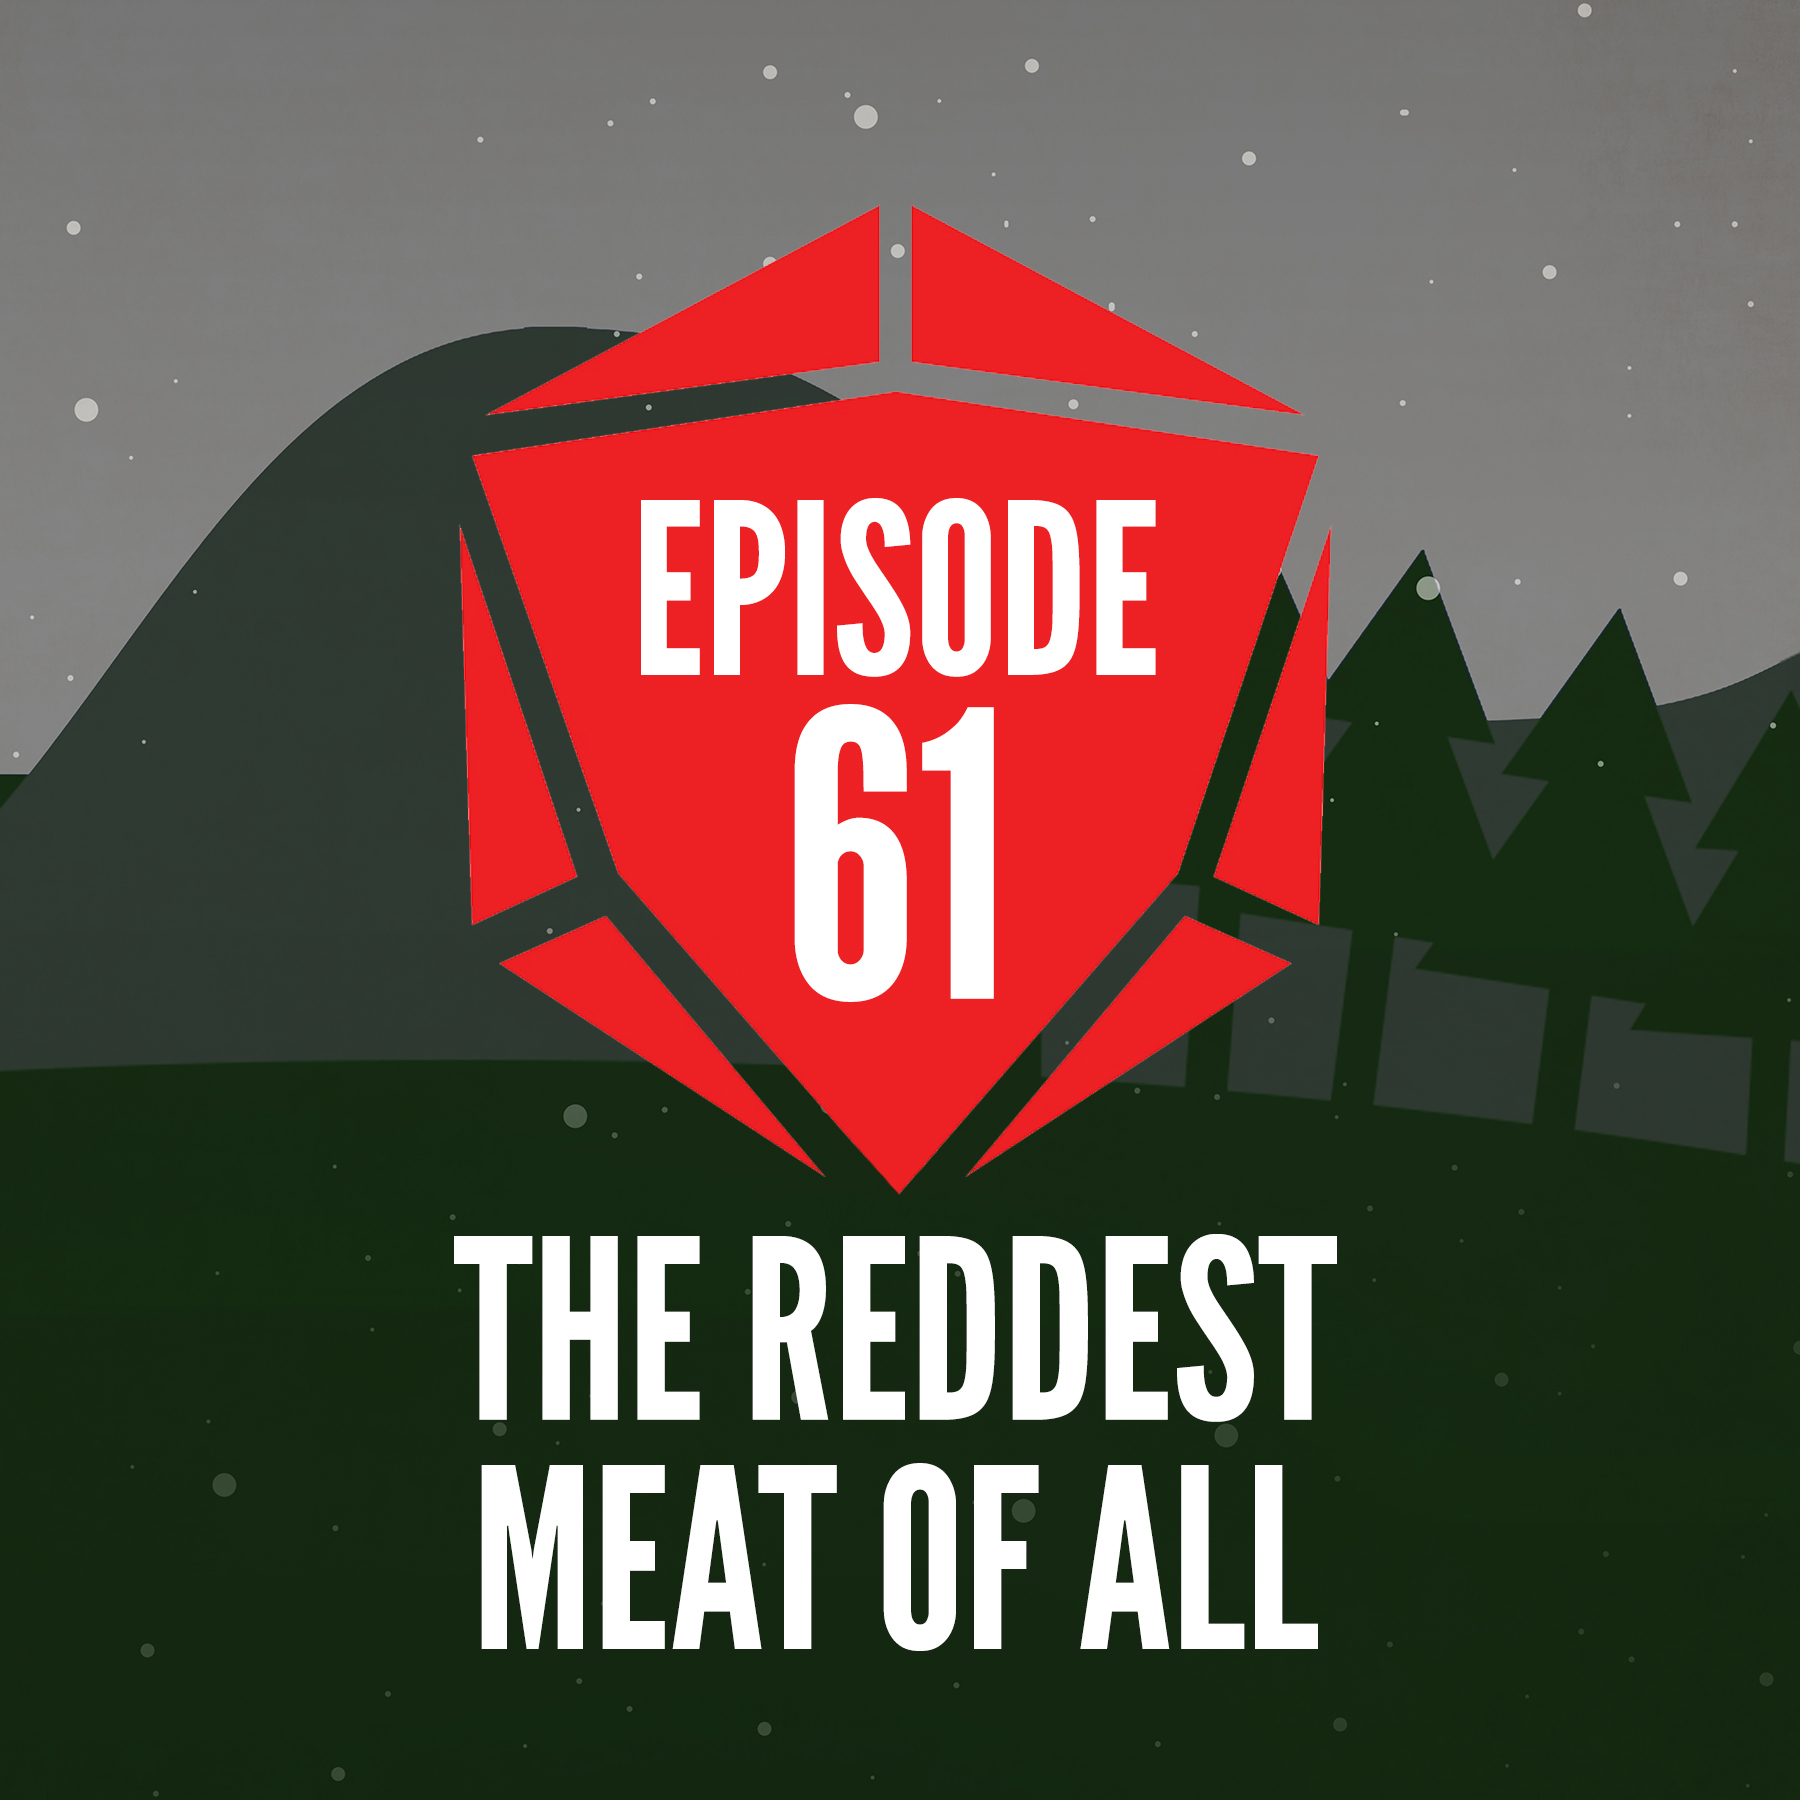 Episode 61: The Reddest Meat of All